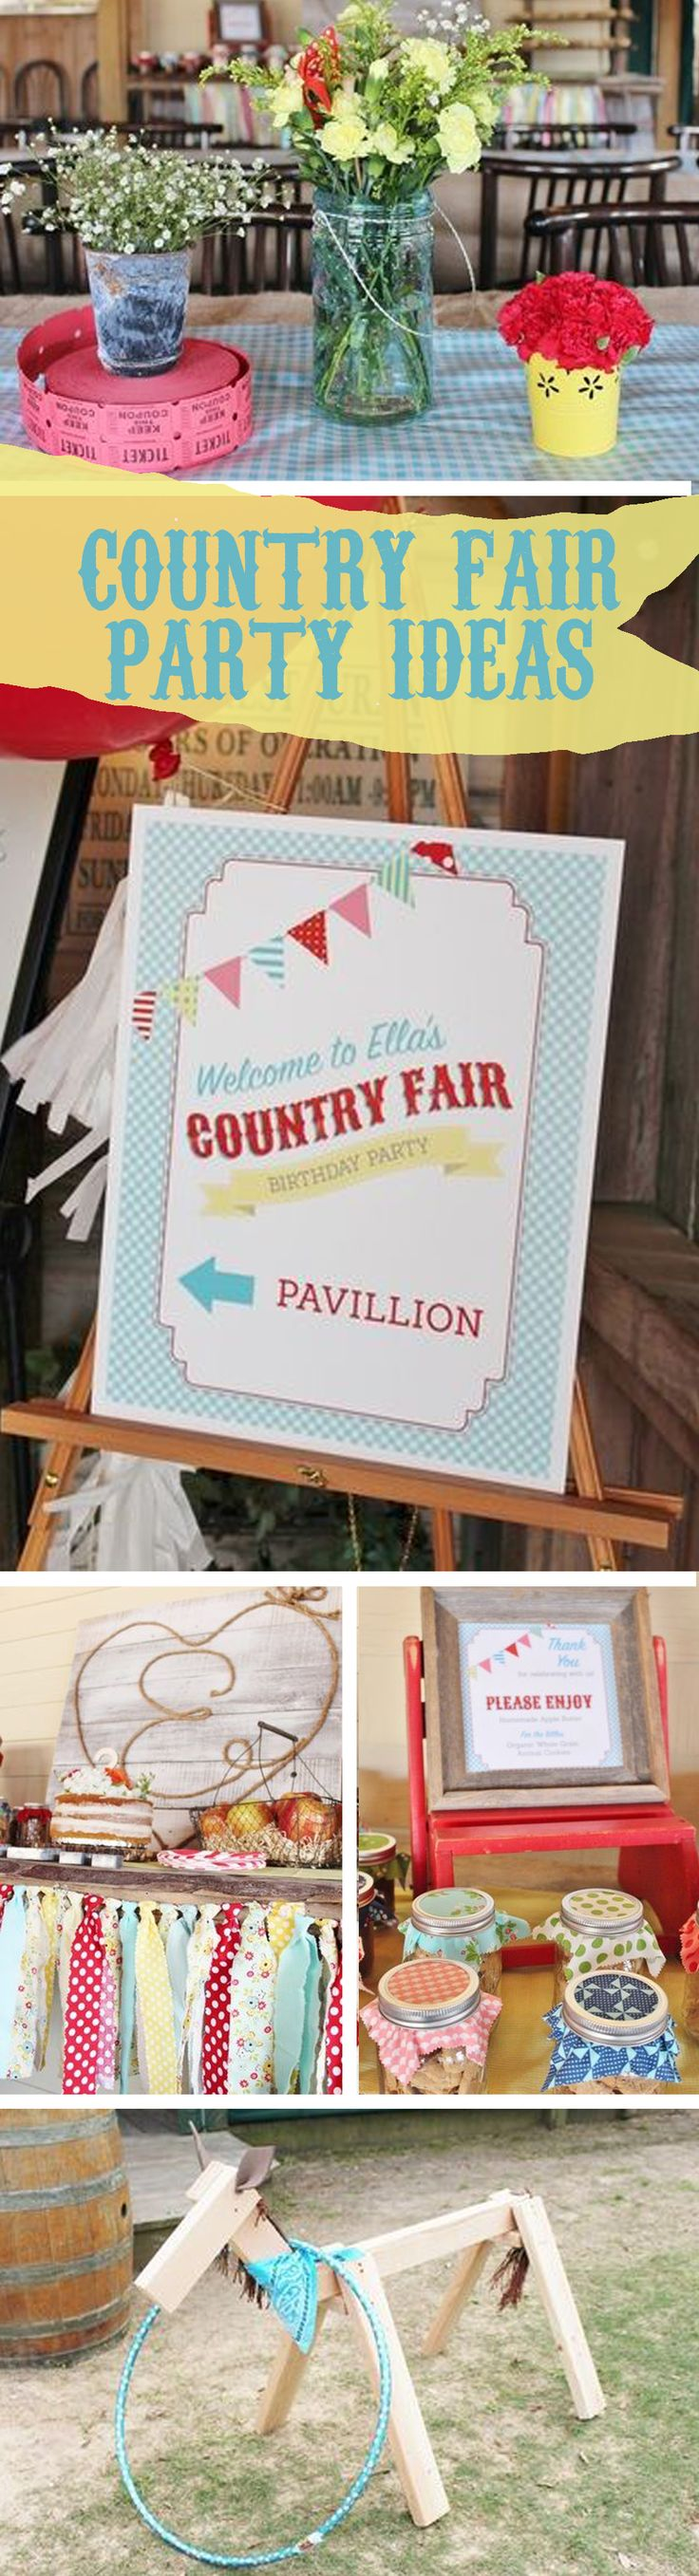 Country Fair Party, Country Fair Party Ideas, Country Fair Party Theme Ideas